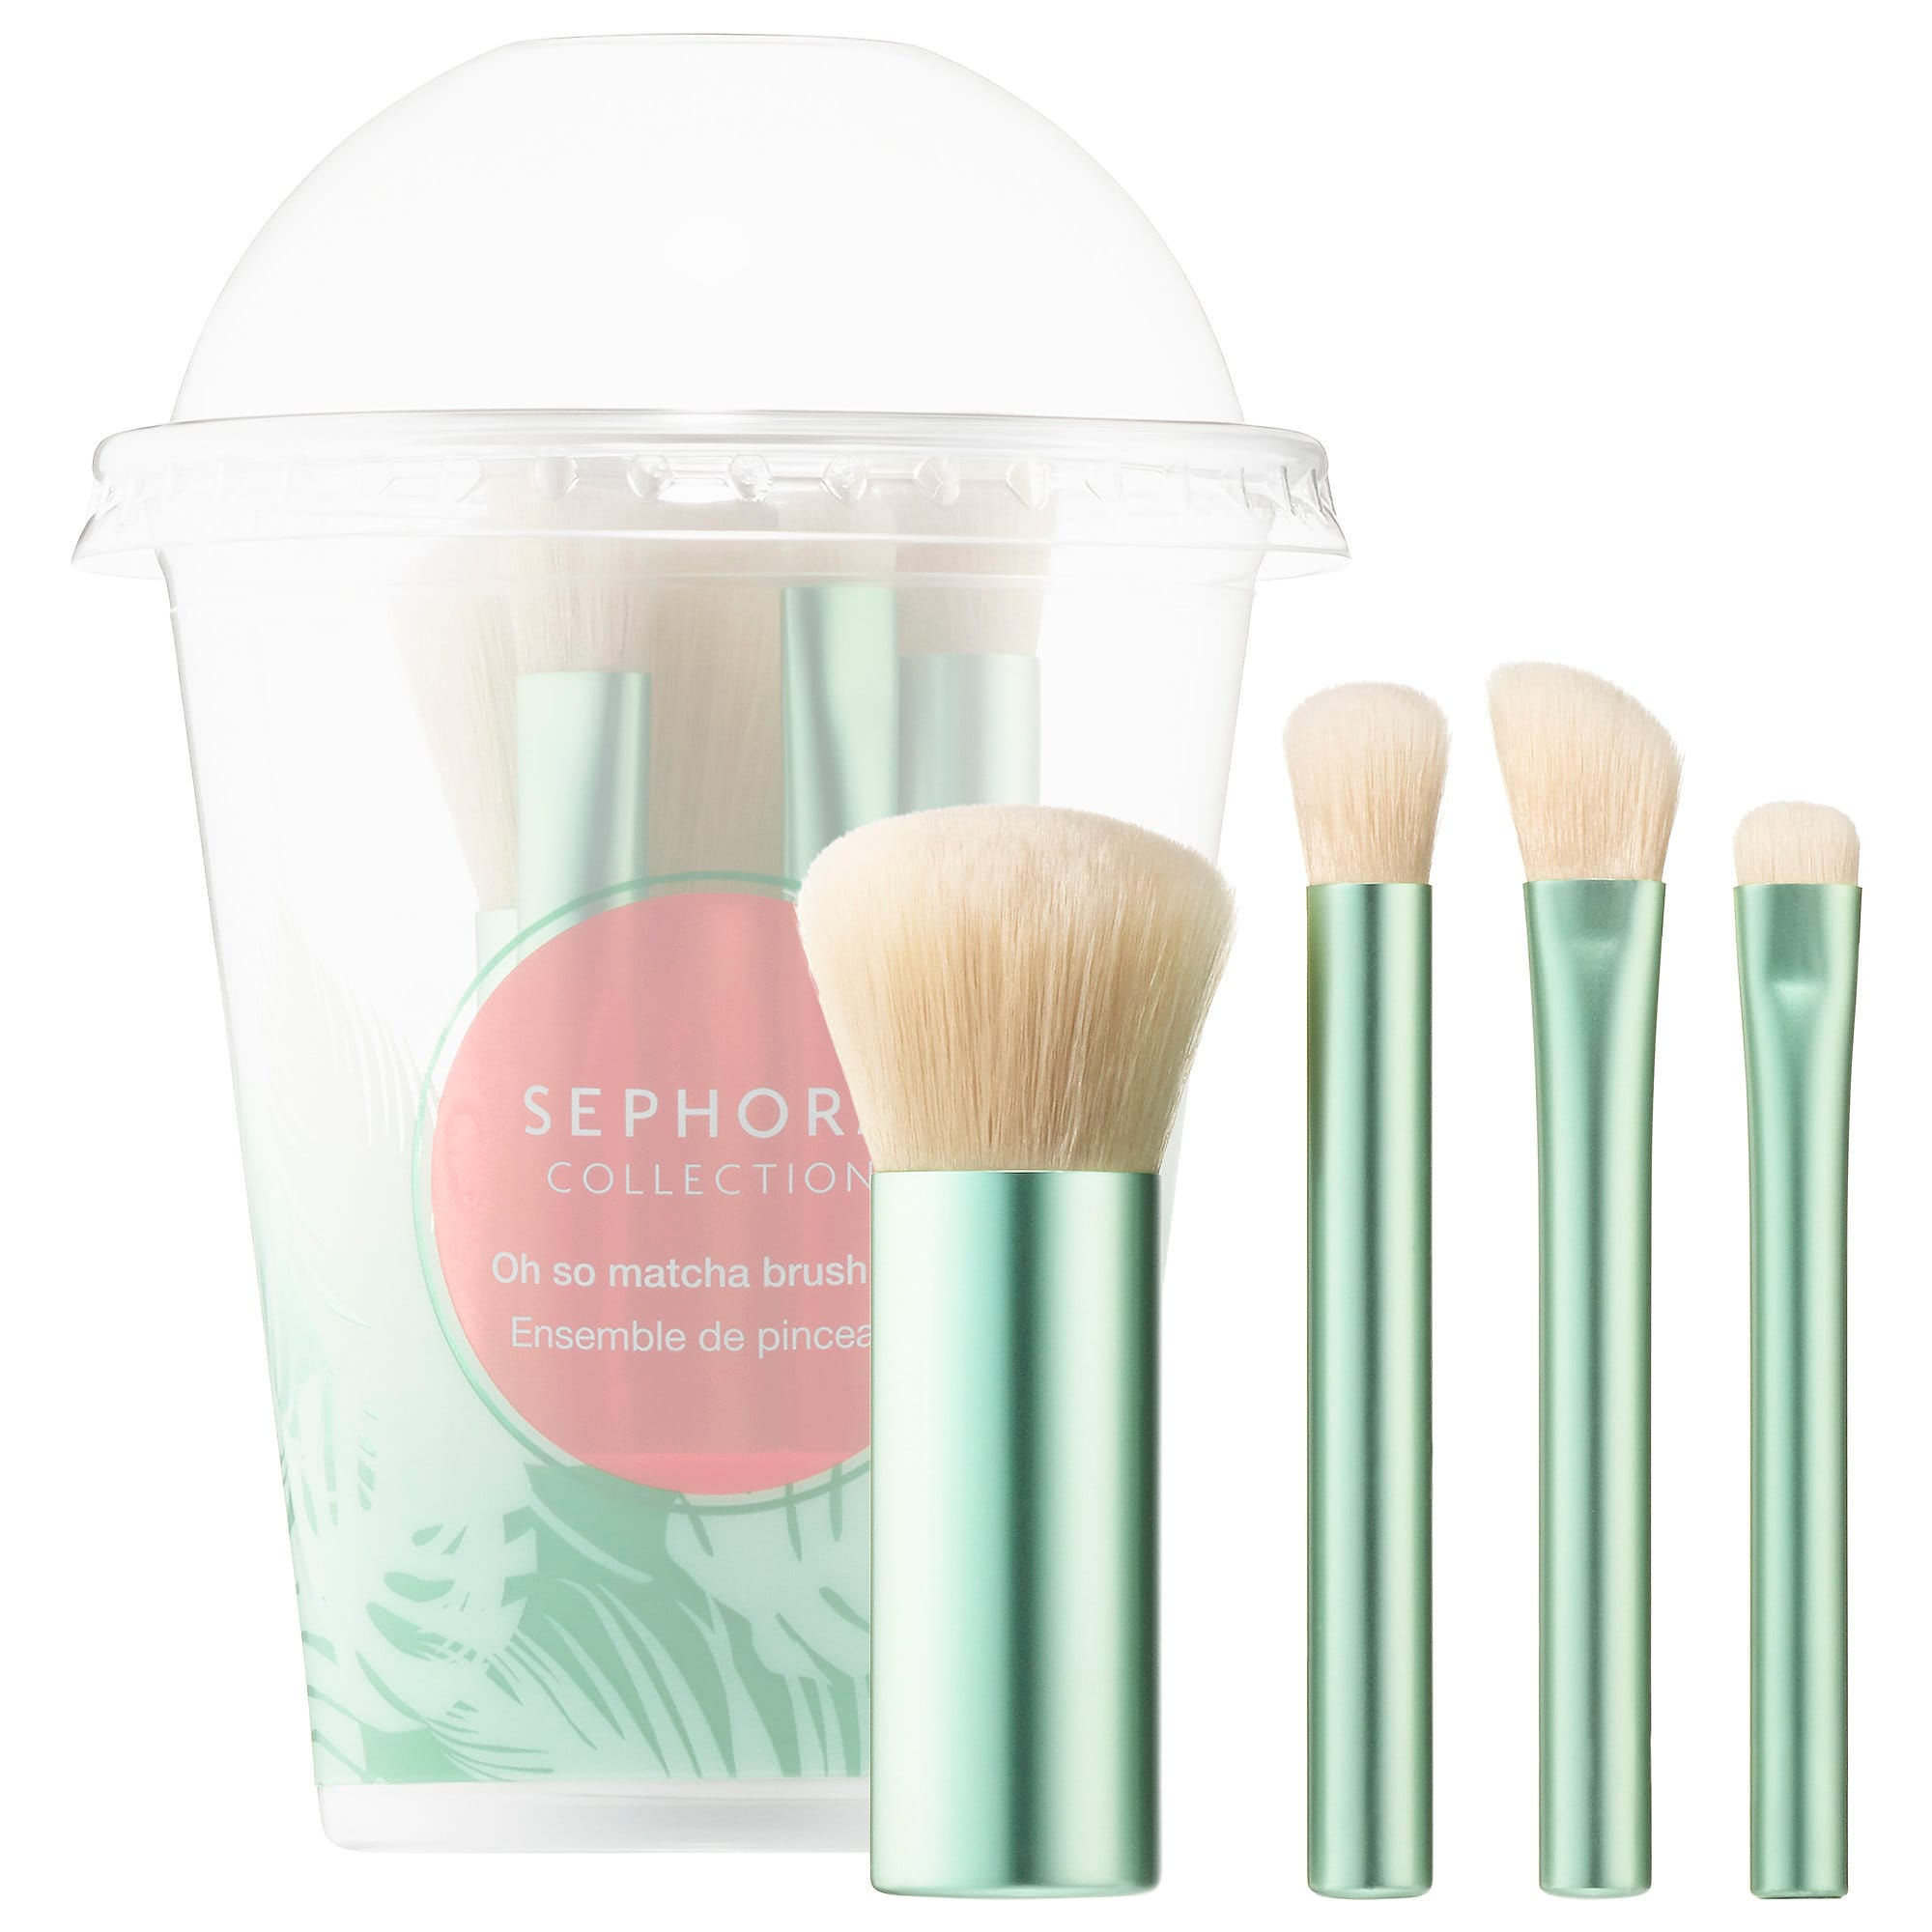 Sephora Collection Oh So Matcha Brush Set | Sephora, Travel ...